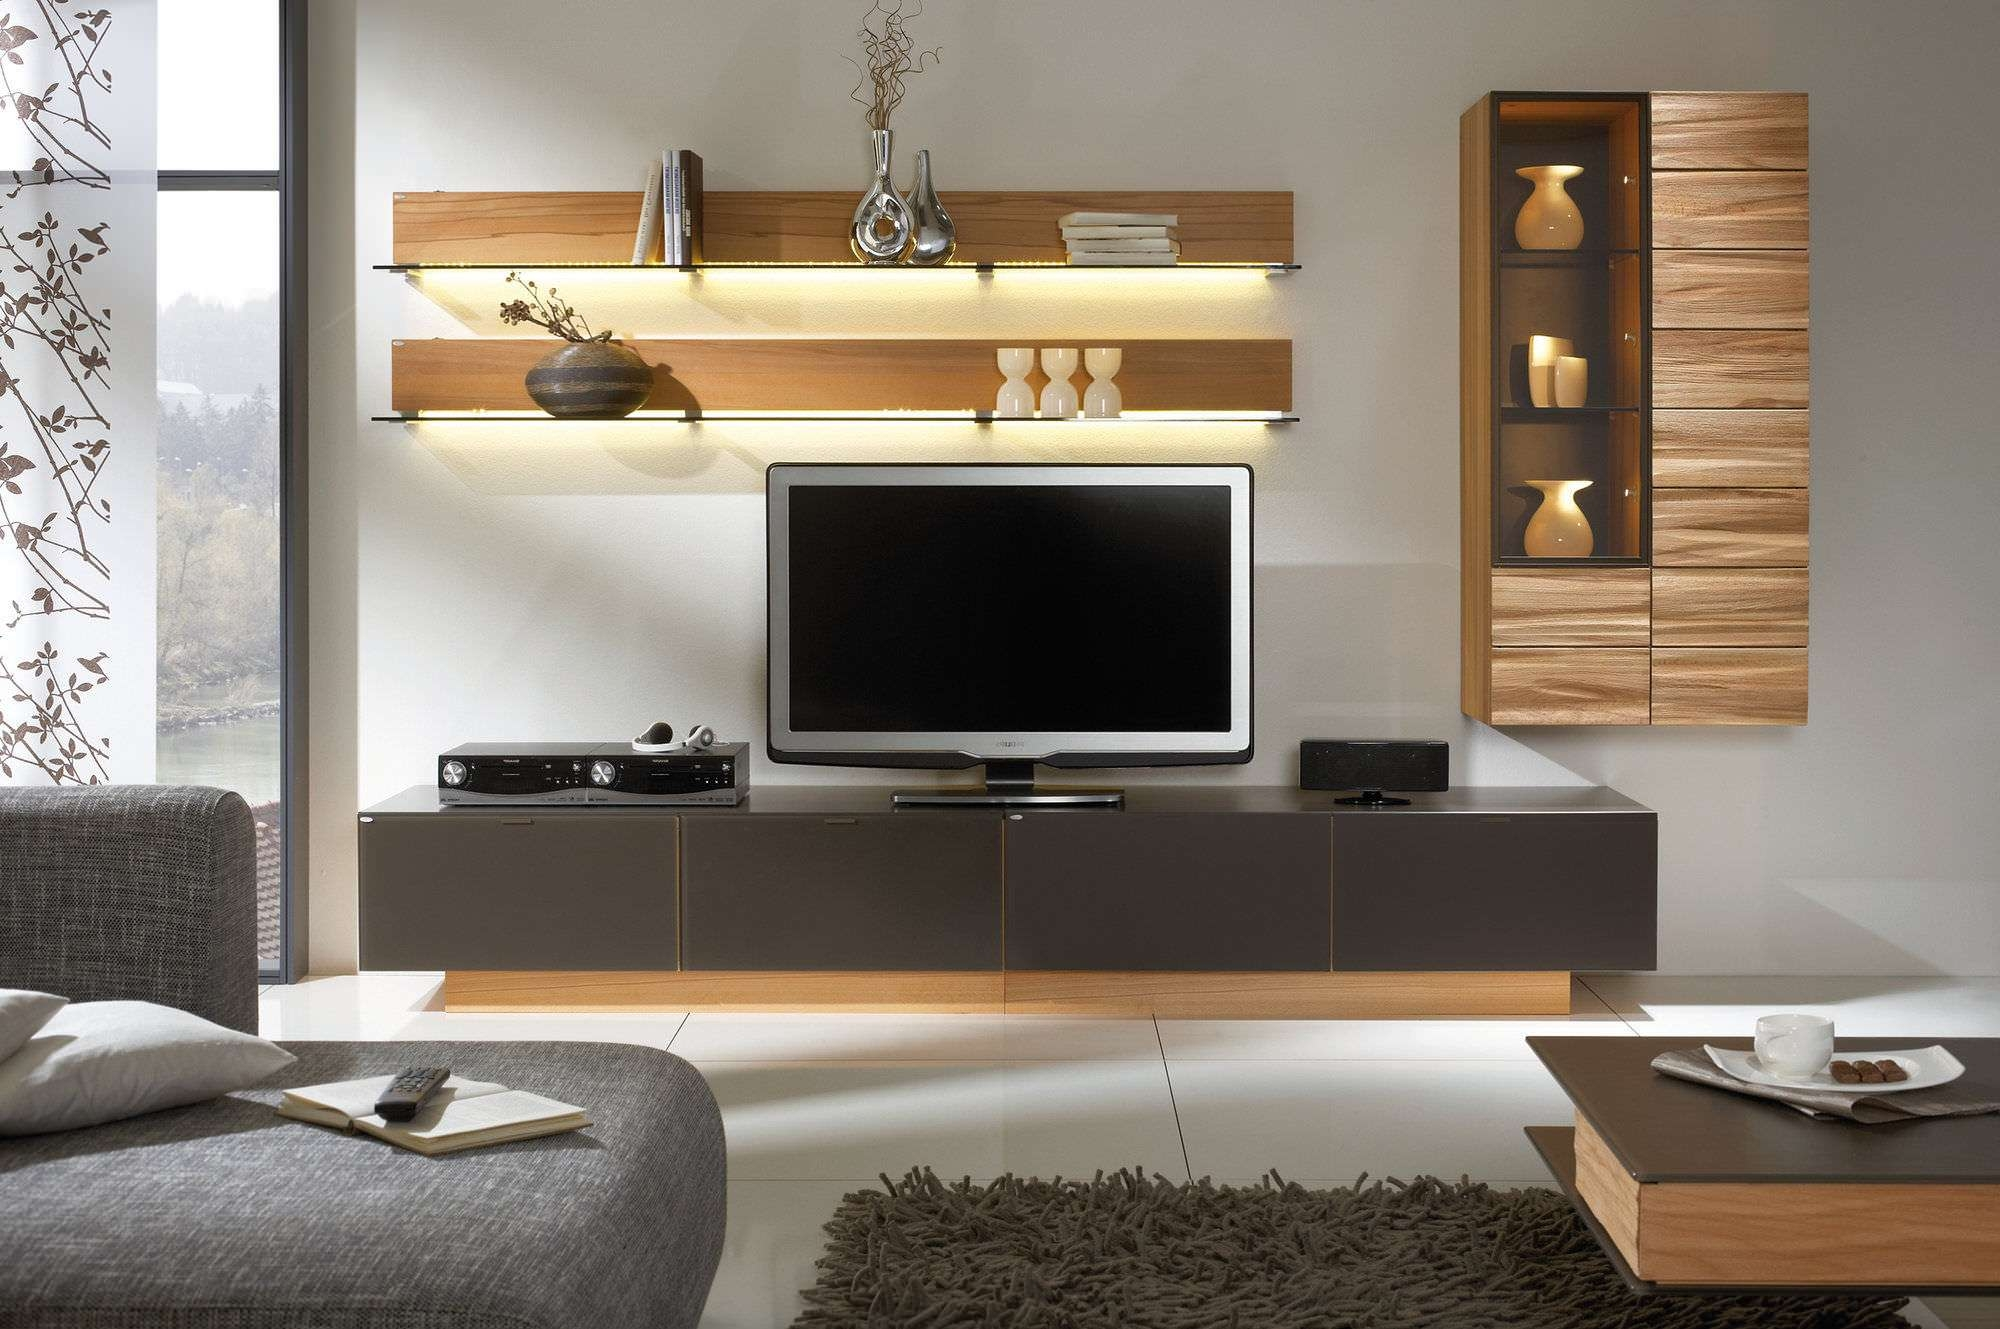 Ideas About Contemporary Tv Units Panel Trends Including Built In Within Modern Design Tv Cabinets (View 12 of 20)